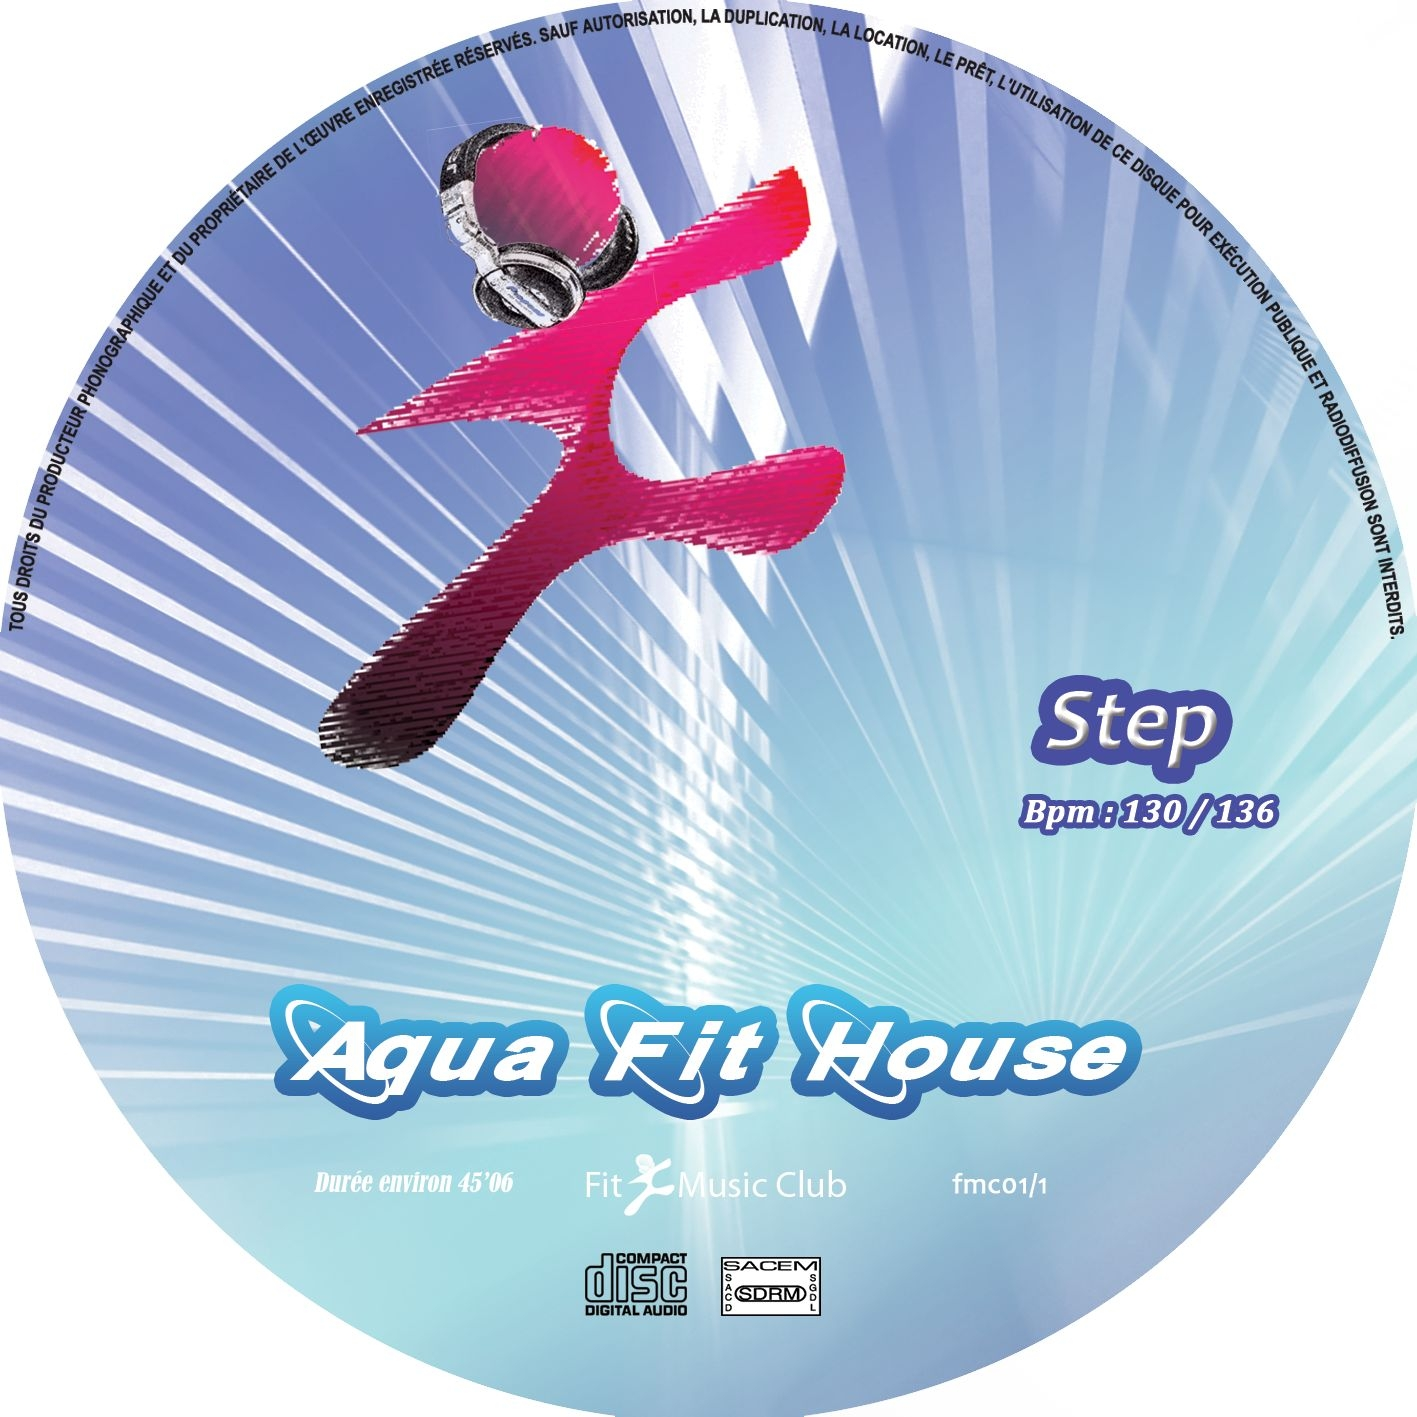 Aqua Fit House / Step